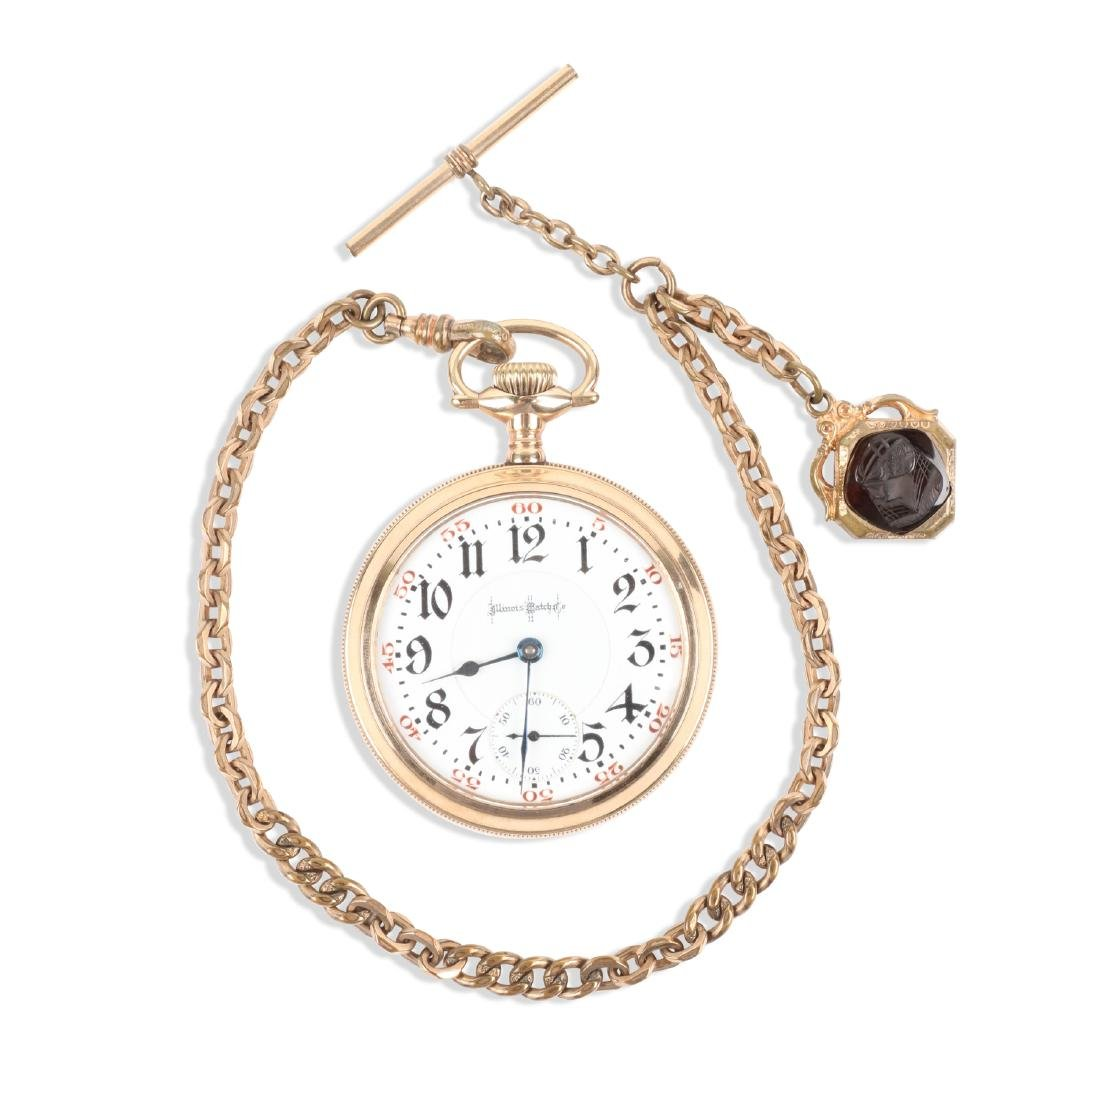 "Illinois, ""Bunn Special"" Railroad Pocket Watch"